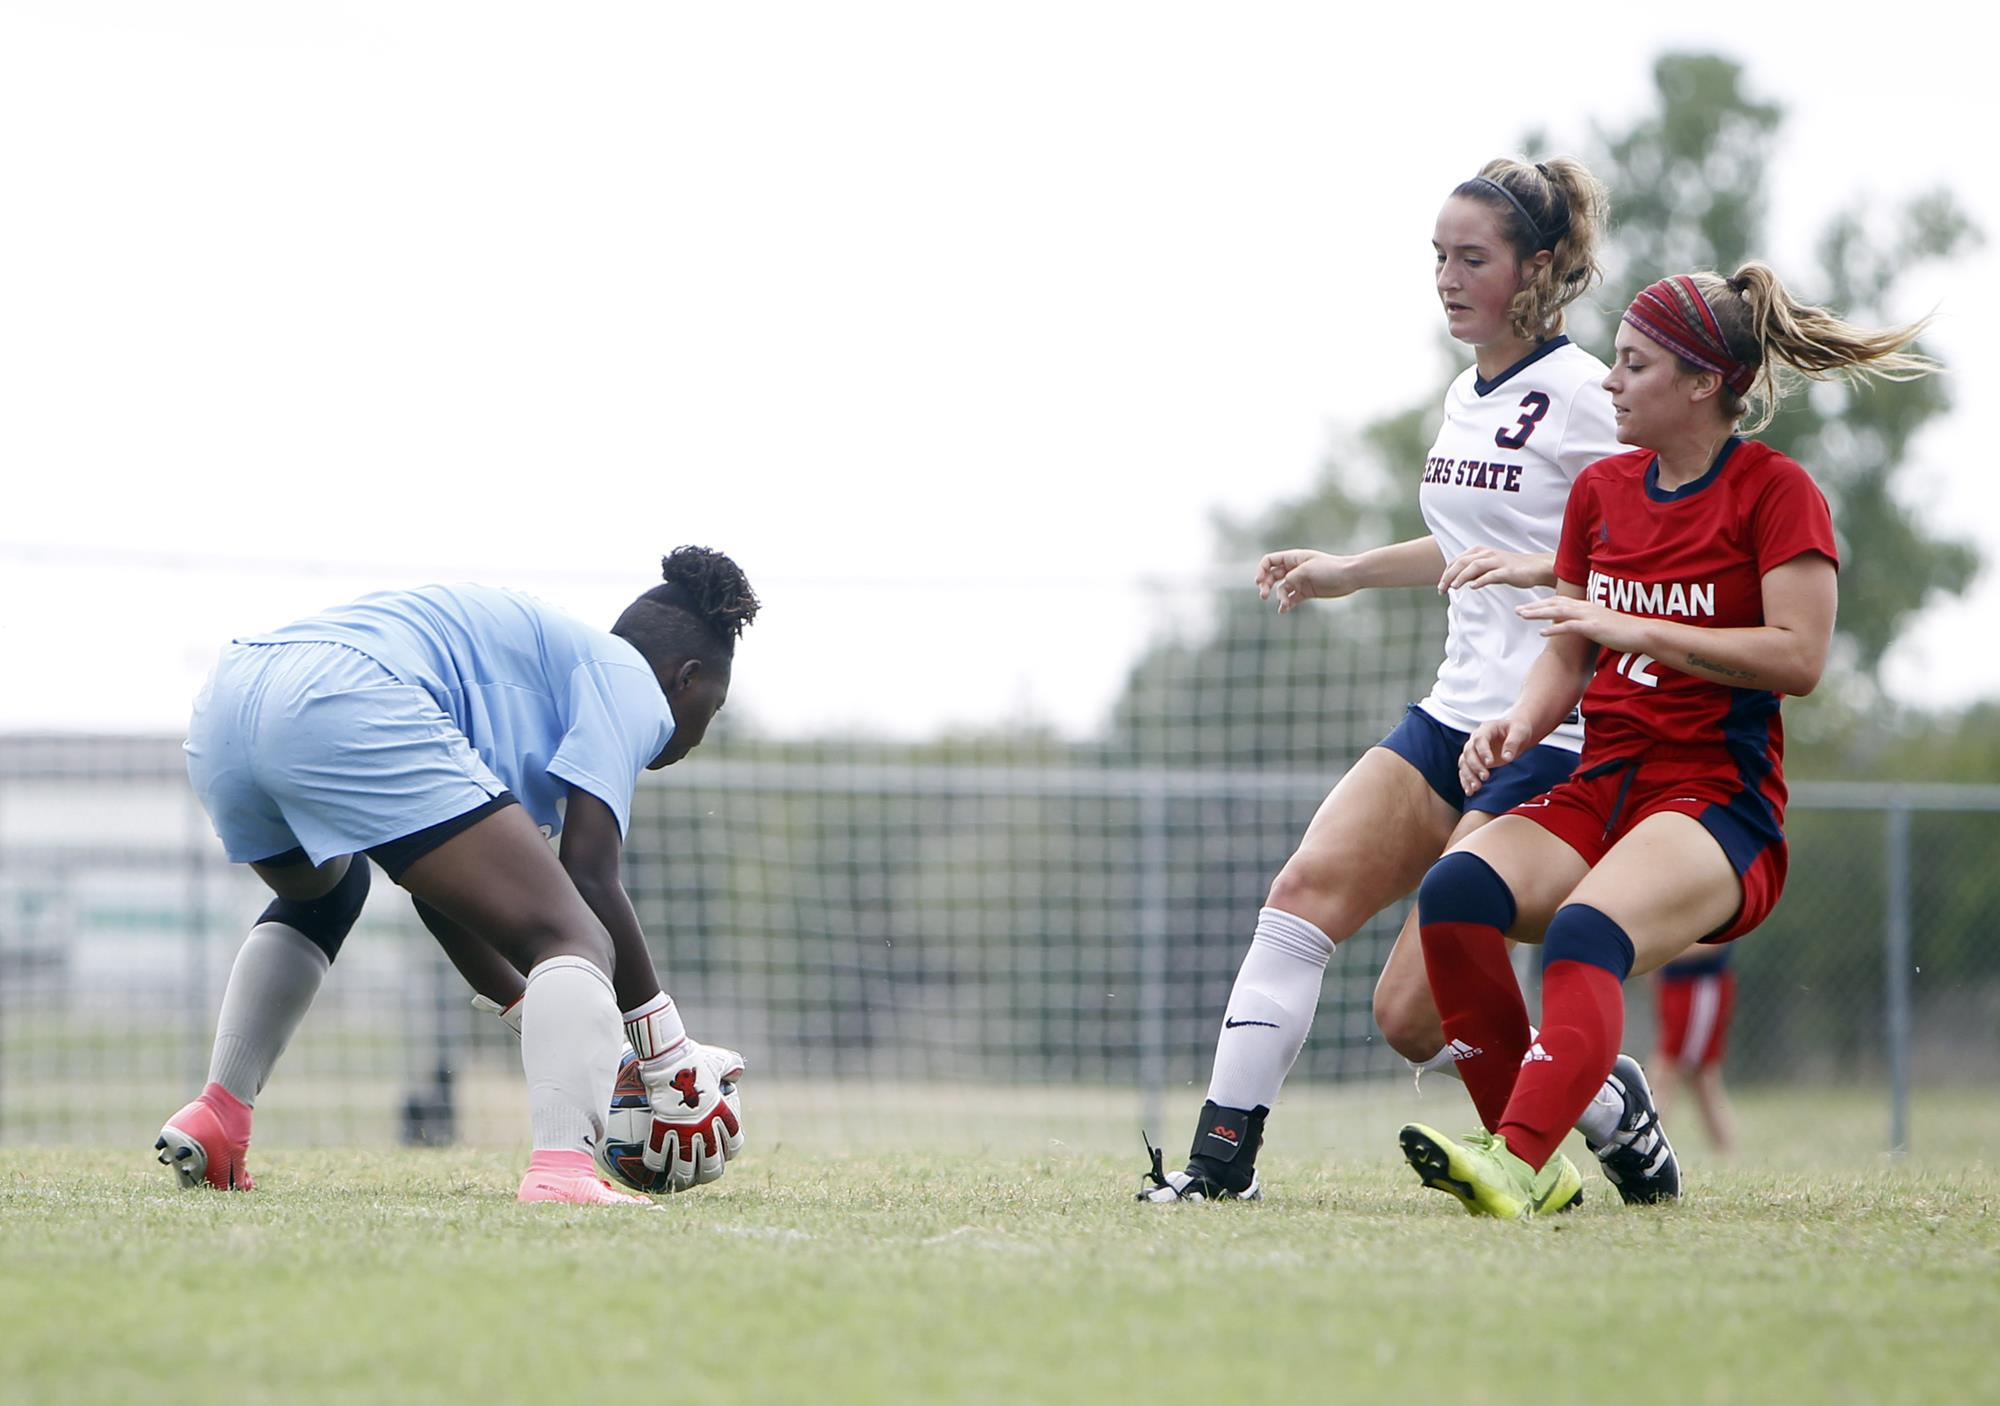 Newman and Friends to host recruiting 'College ID' camp